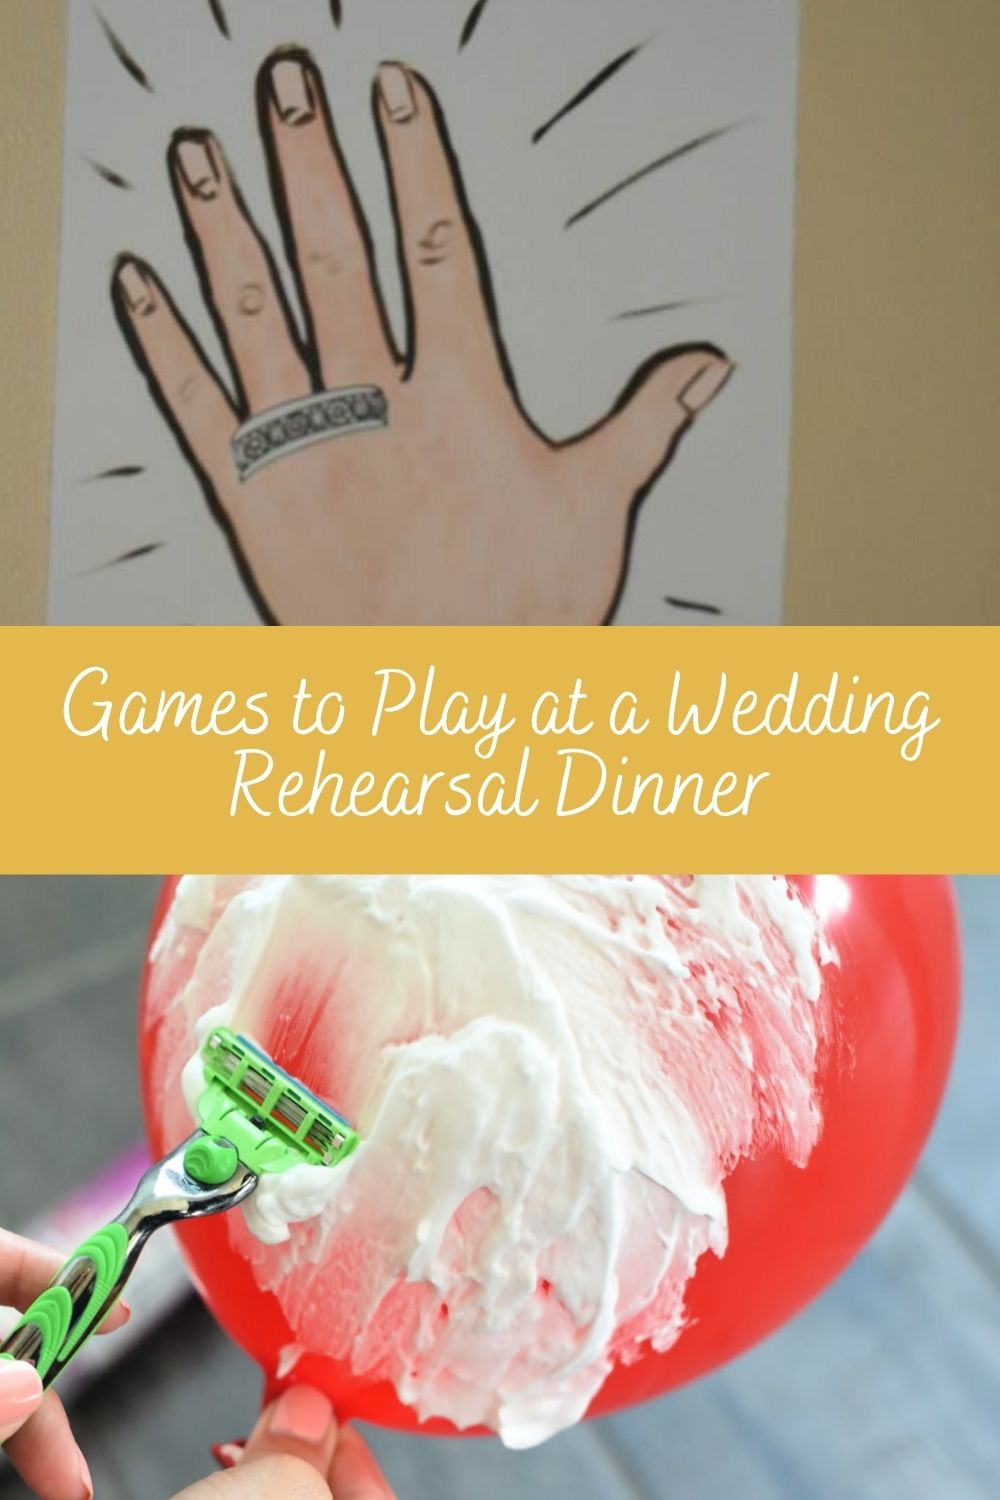 Games to Play at a Wedding Rehearsal Dinner